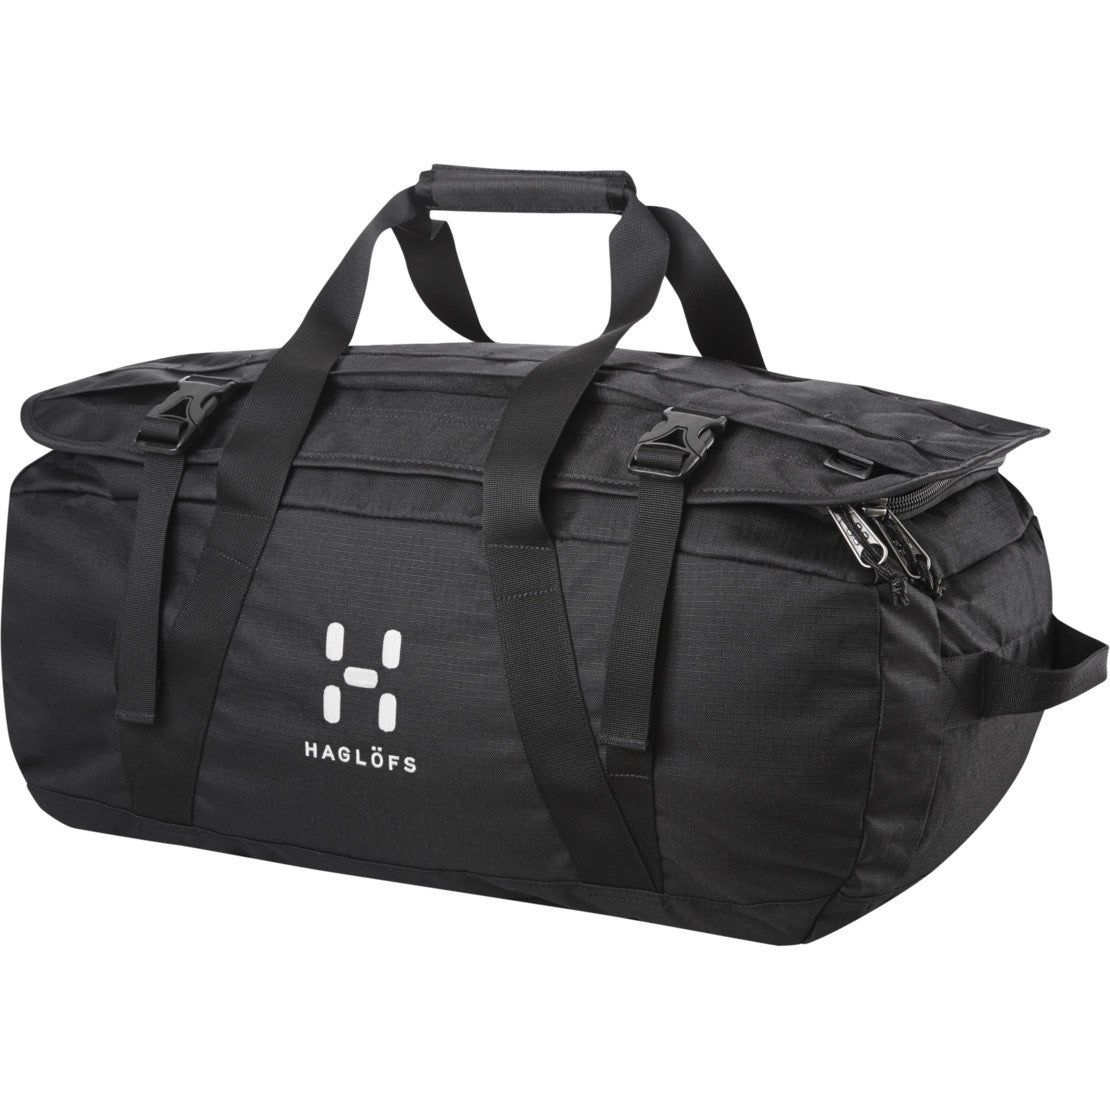 Haglofs Cargo 40 Duffle Bag - True Black True Black